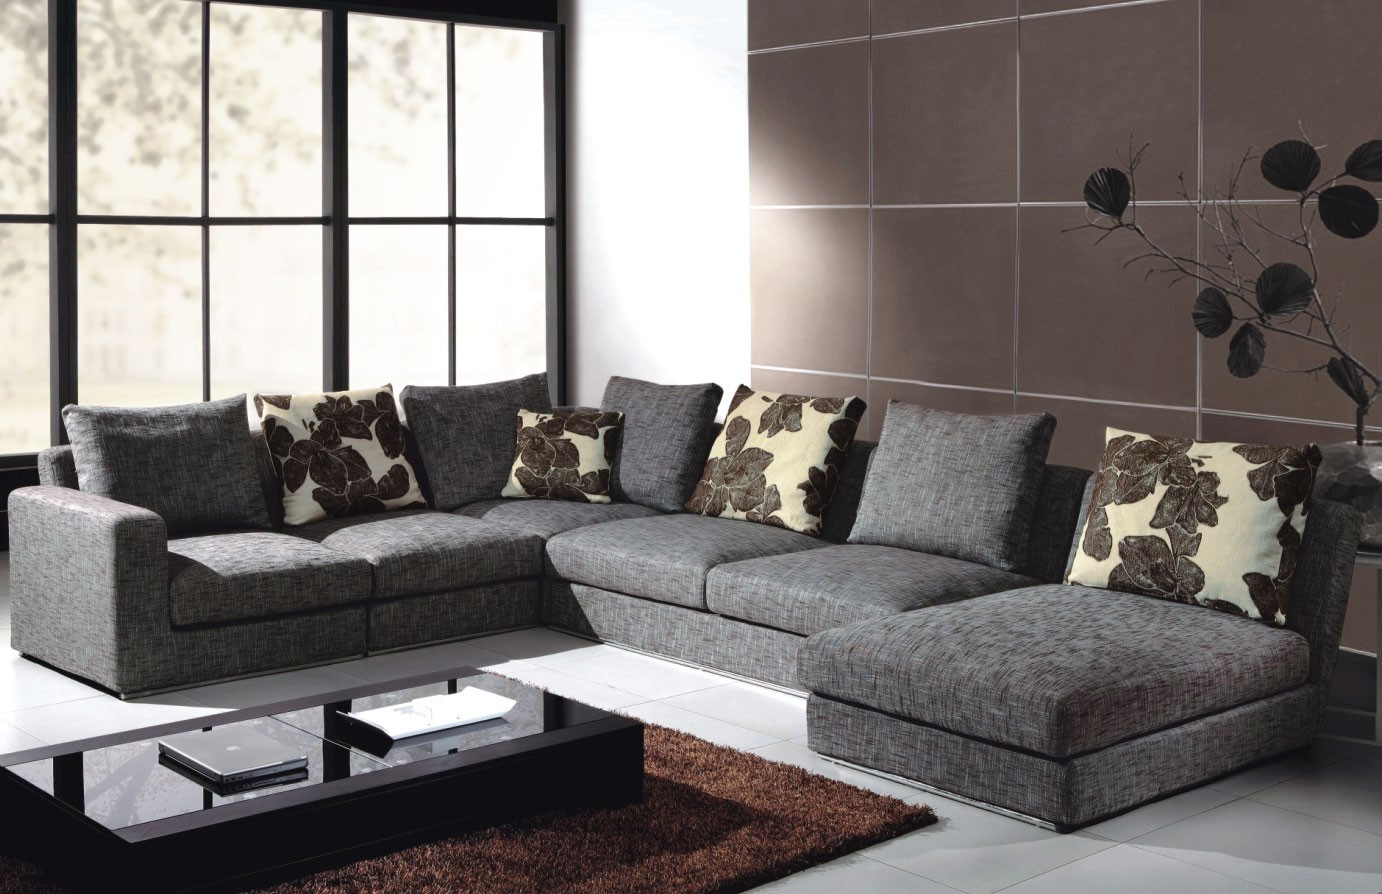 Perfect Sectional Sofa Grey 75 For Your Modern Sofa Inspiration with Sectional Sofa Grey